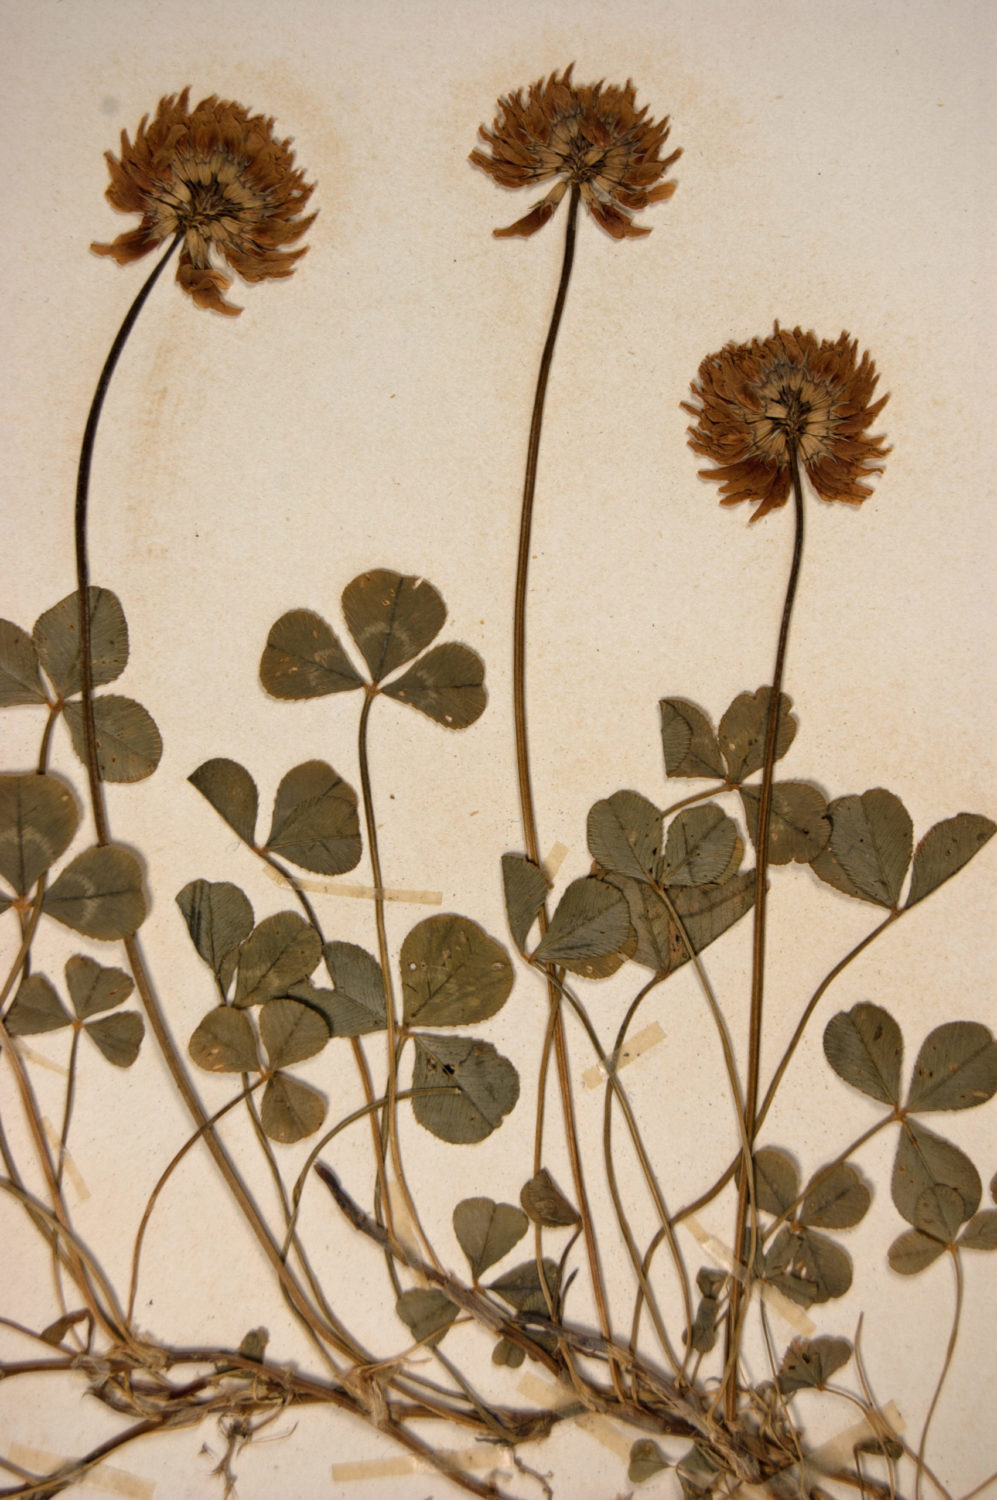 White clover (Trifolium repens) collected at Dartington Parsonage 4 July 1903 collected by Keble Martin